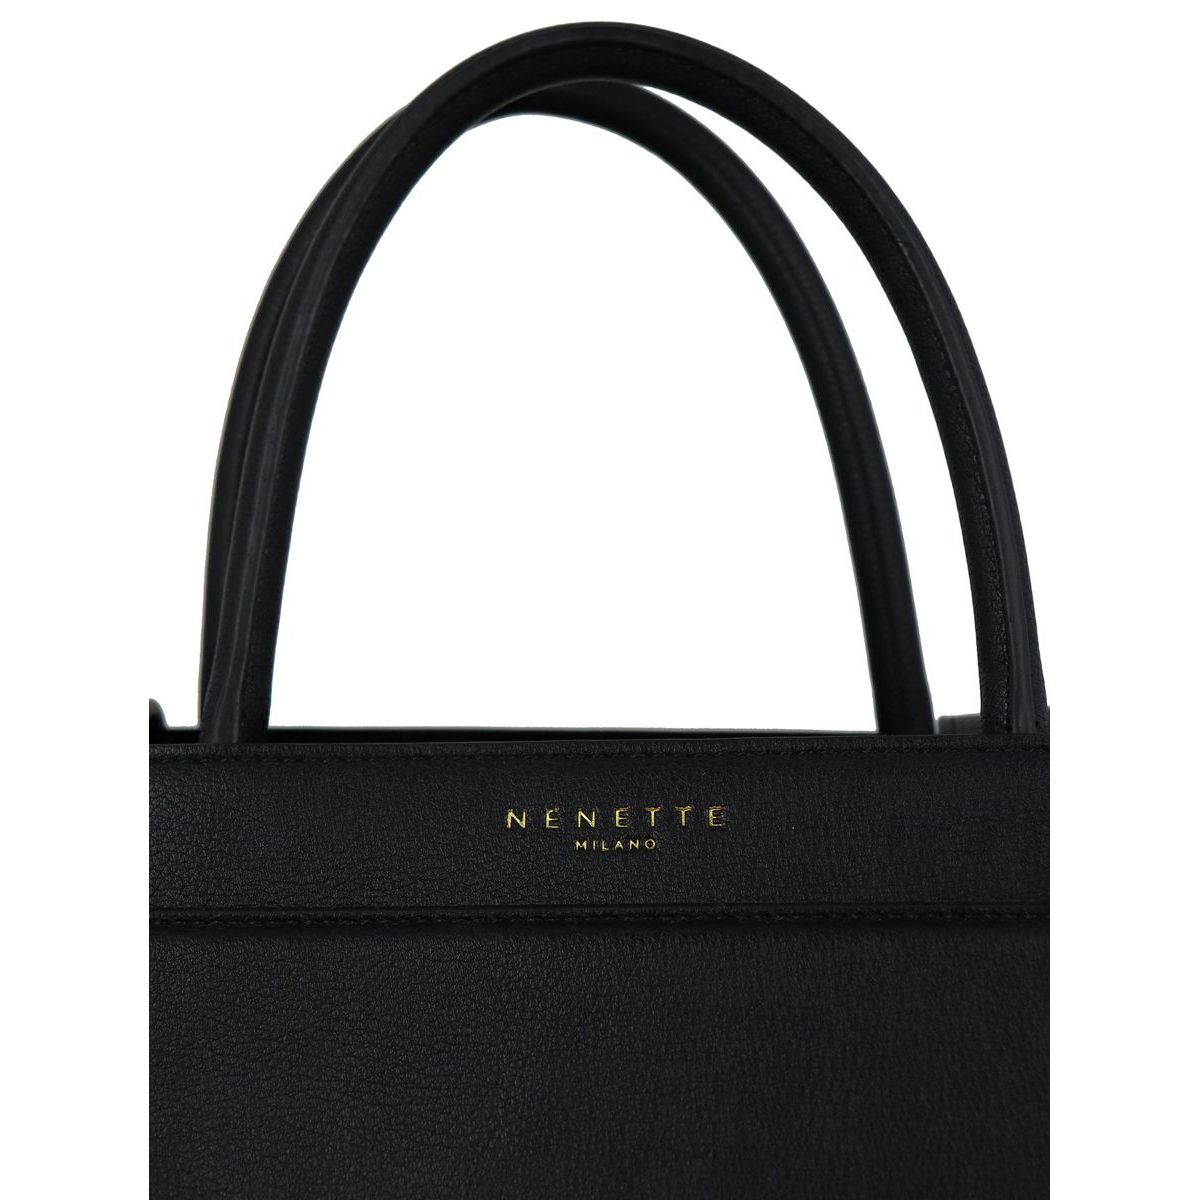 UPUPA bag with shoulder strap Black Nenette